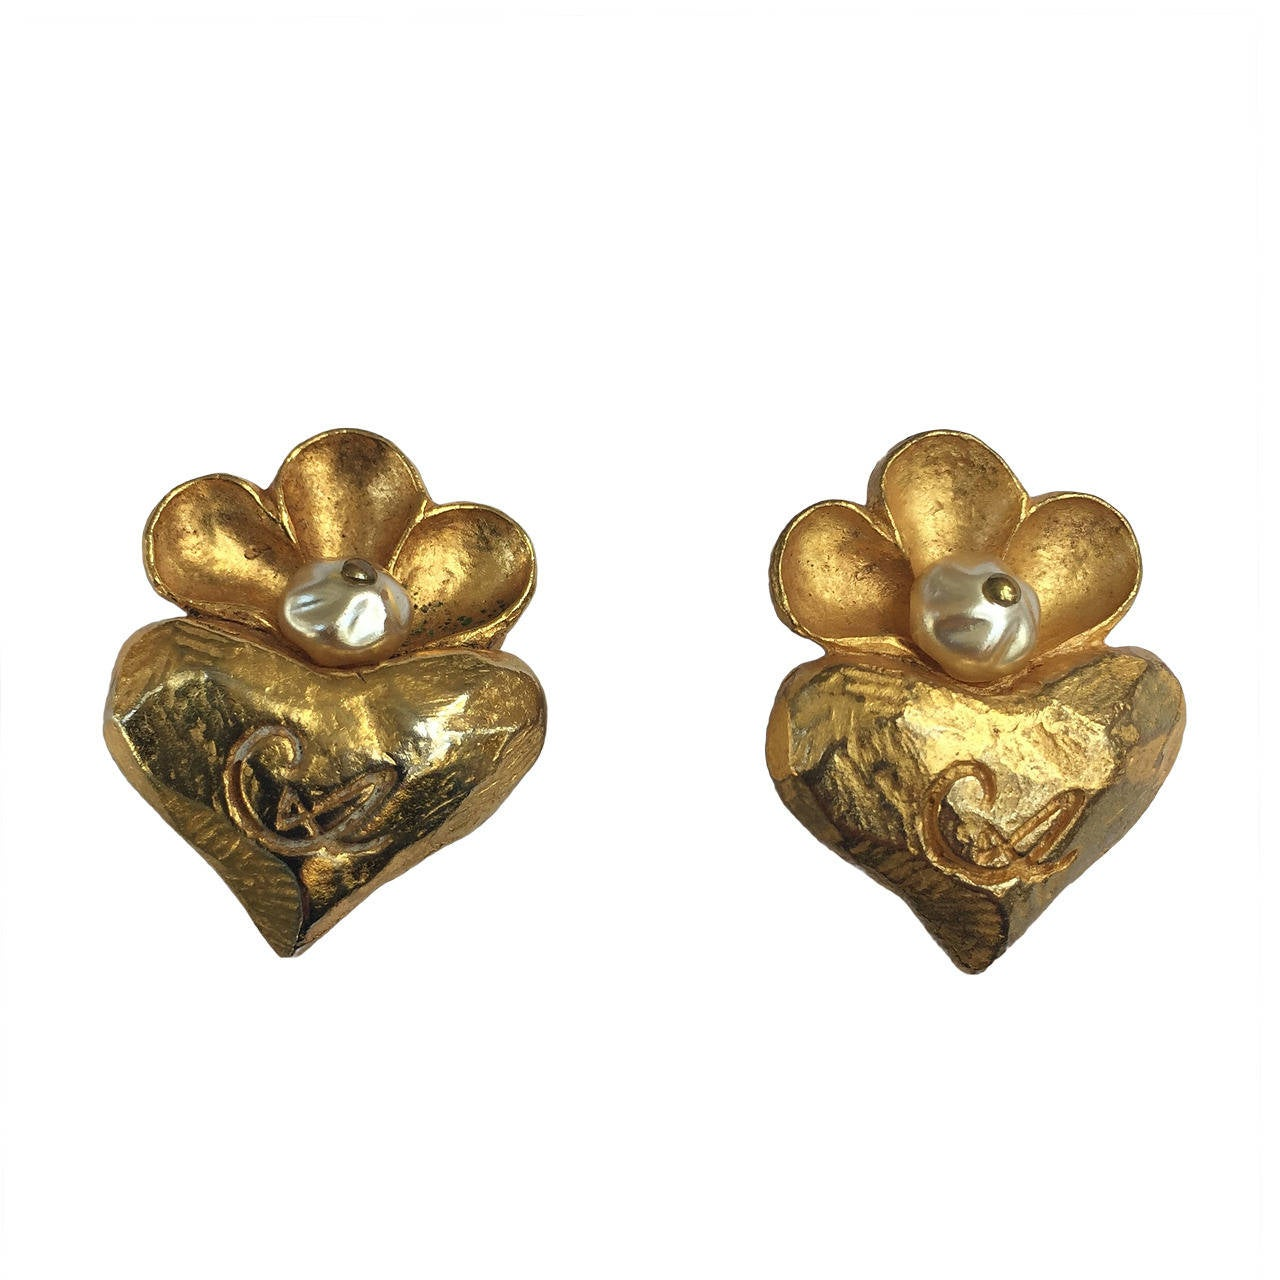 Christian Lacroix 80s heart clip earrings. For Sale at 1stdibs